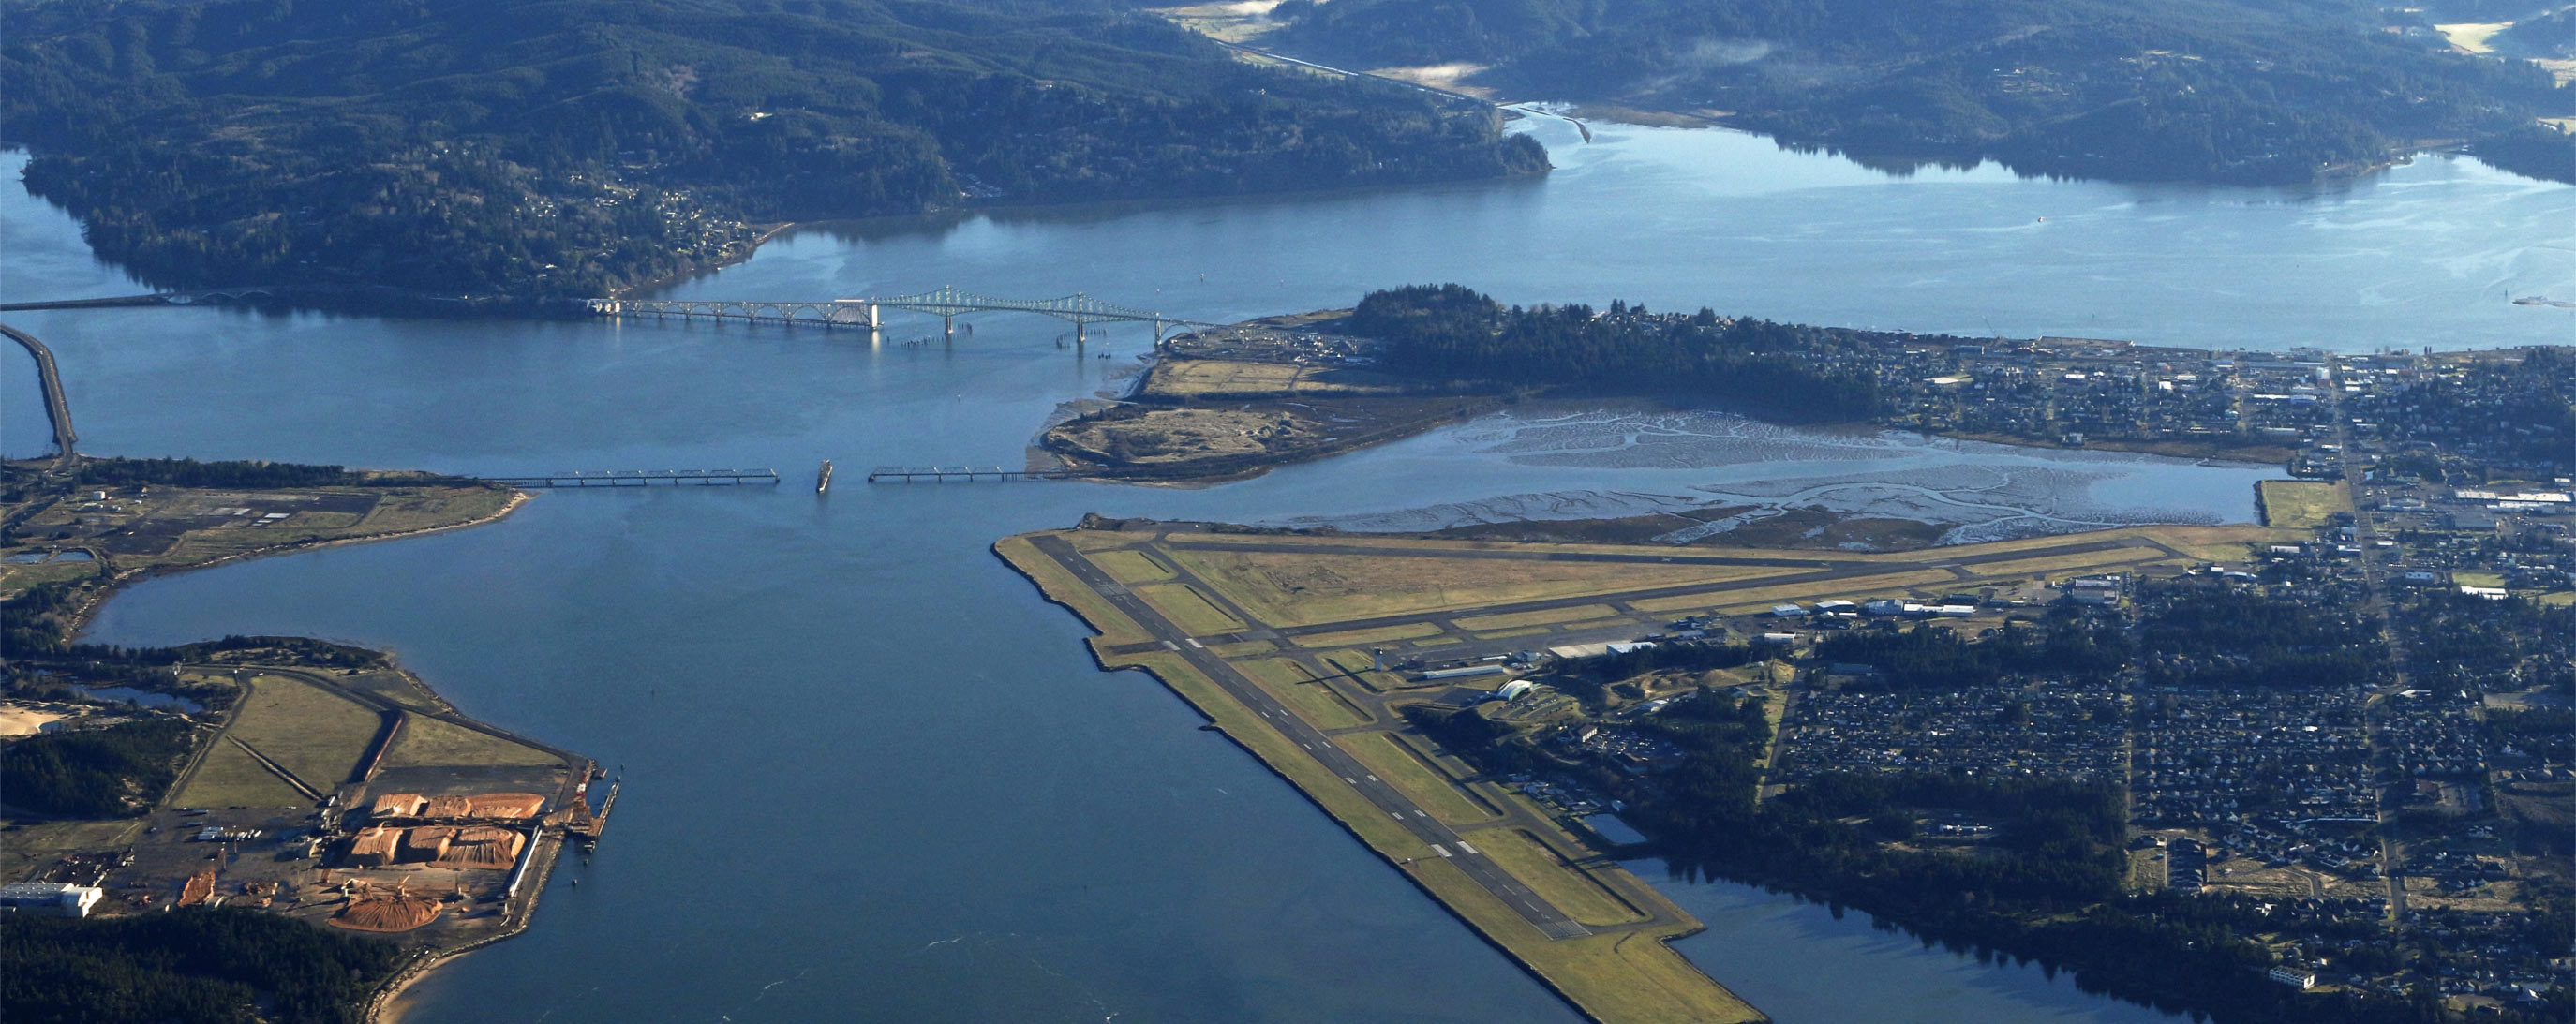 Aerial-of-Airport_OTH2-resize.jpg